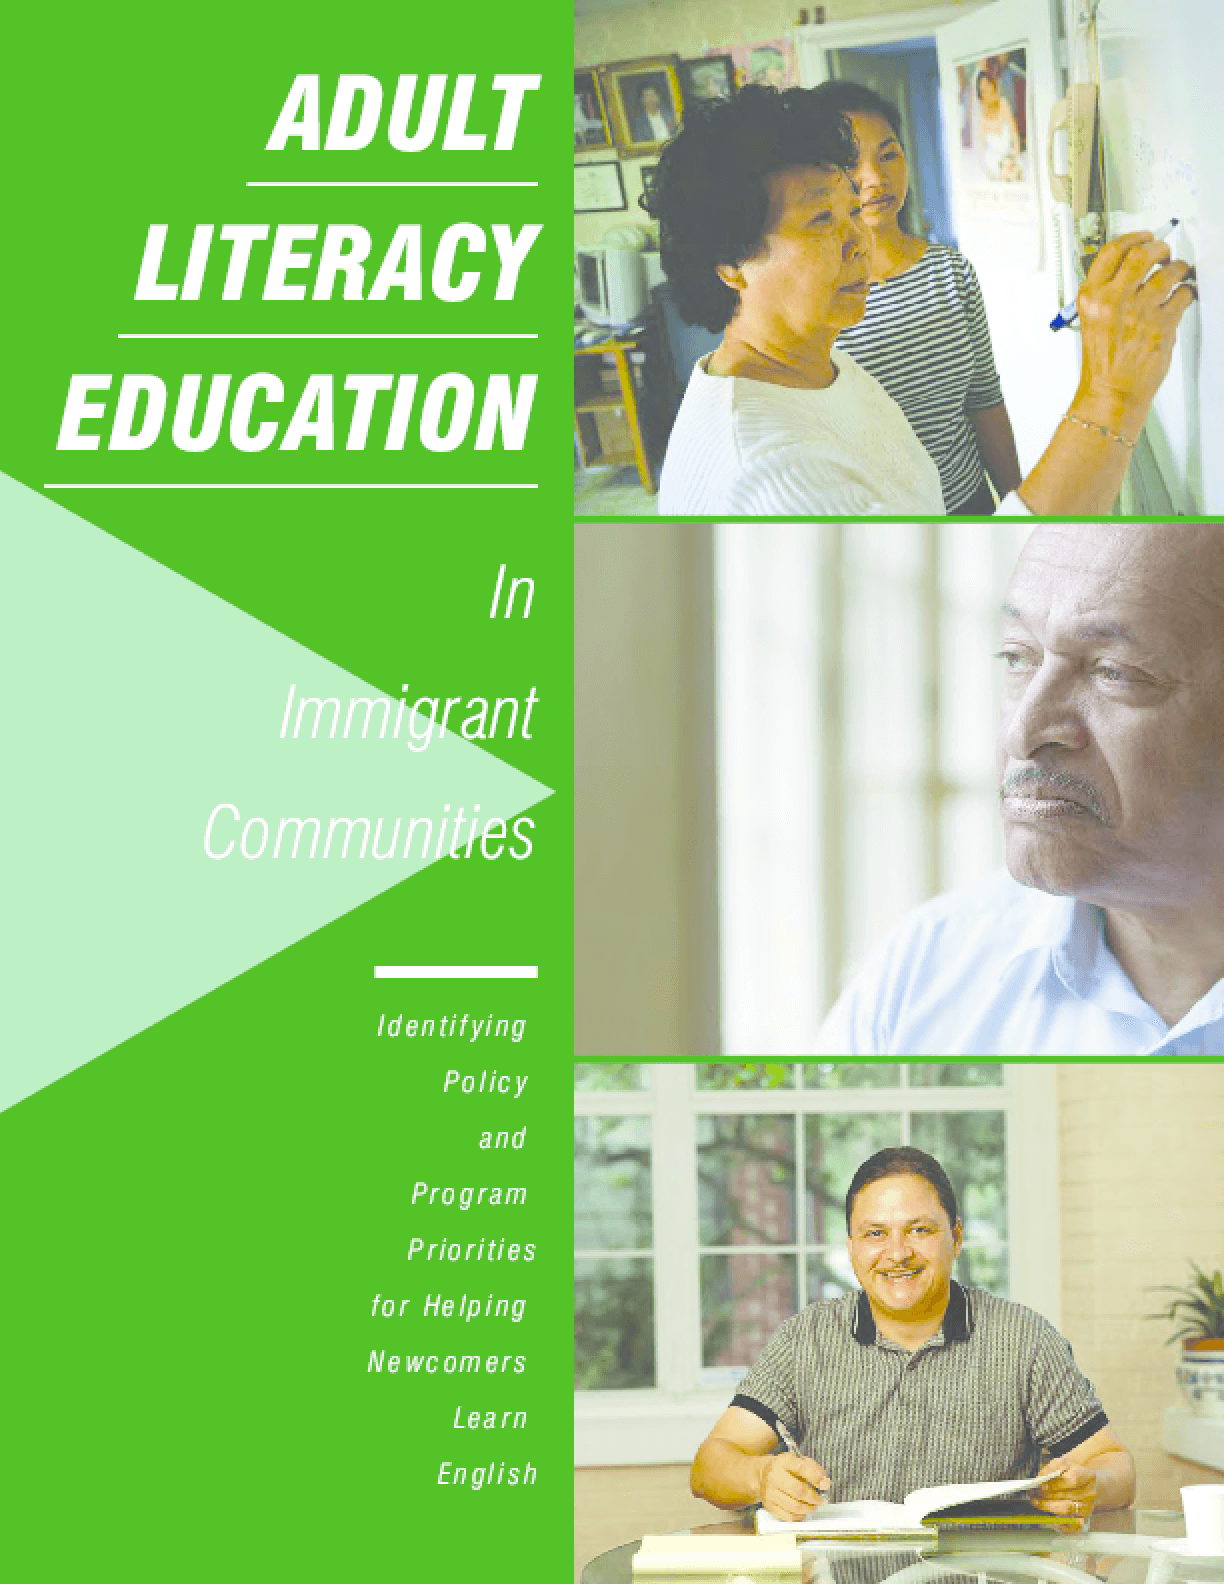 Adult Literacy Education in Immigrant Communities: Identifying Policy and Program Priorities for Helping Newcomers Learn English